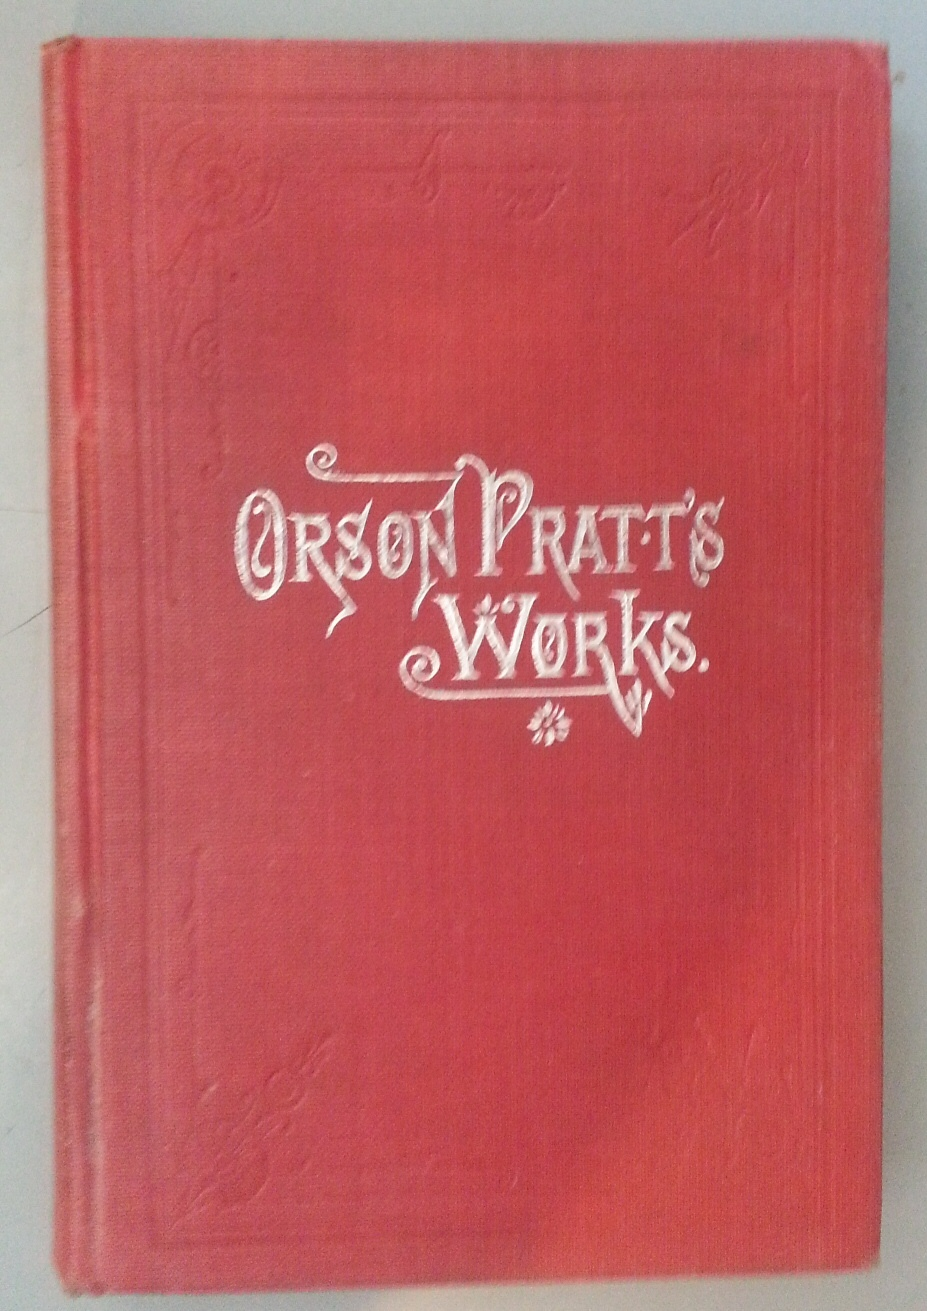 ORSON PRATT'S WORKS: ON THE DOCTRINES OF THE GOSPEL A Series of Pamphlets on the Doctrines of the Gospel, Pratt, Orson